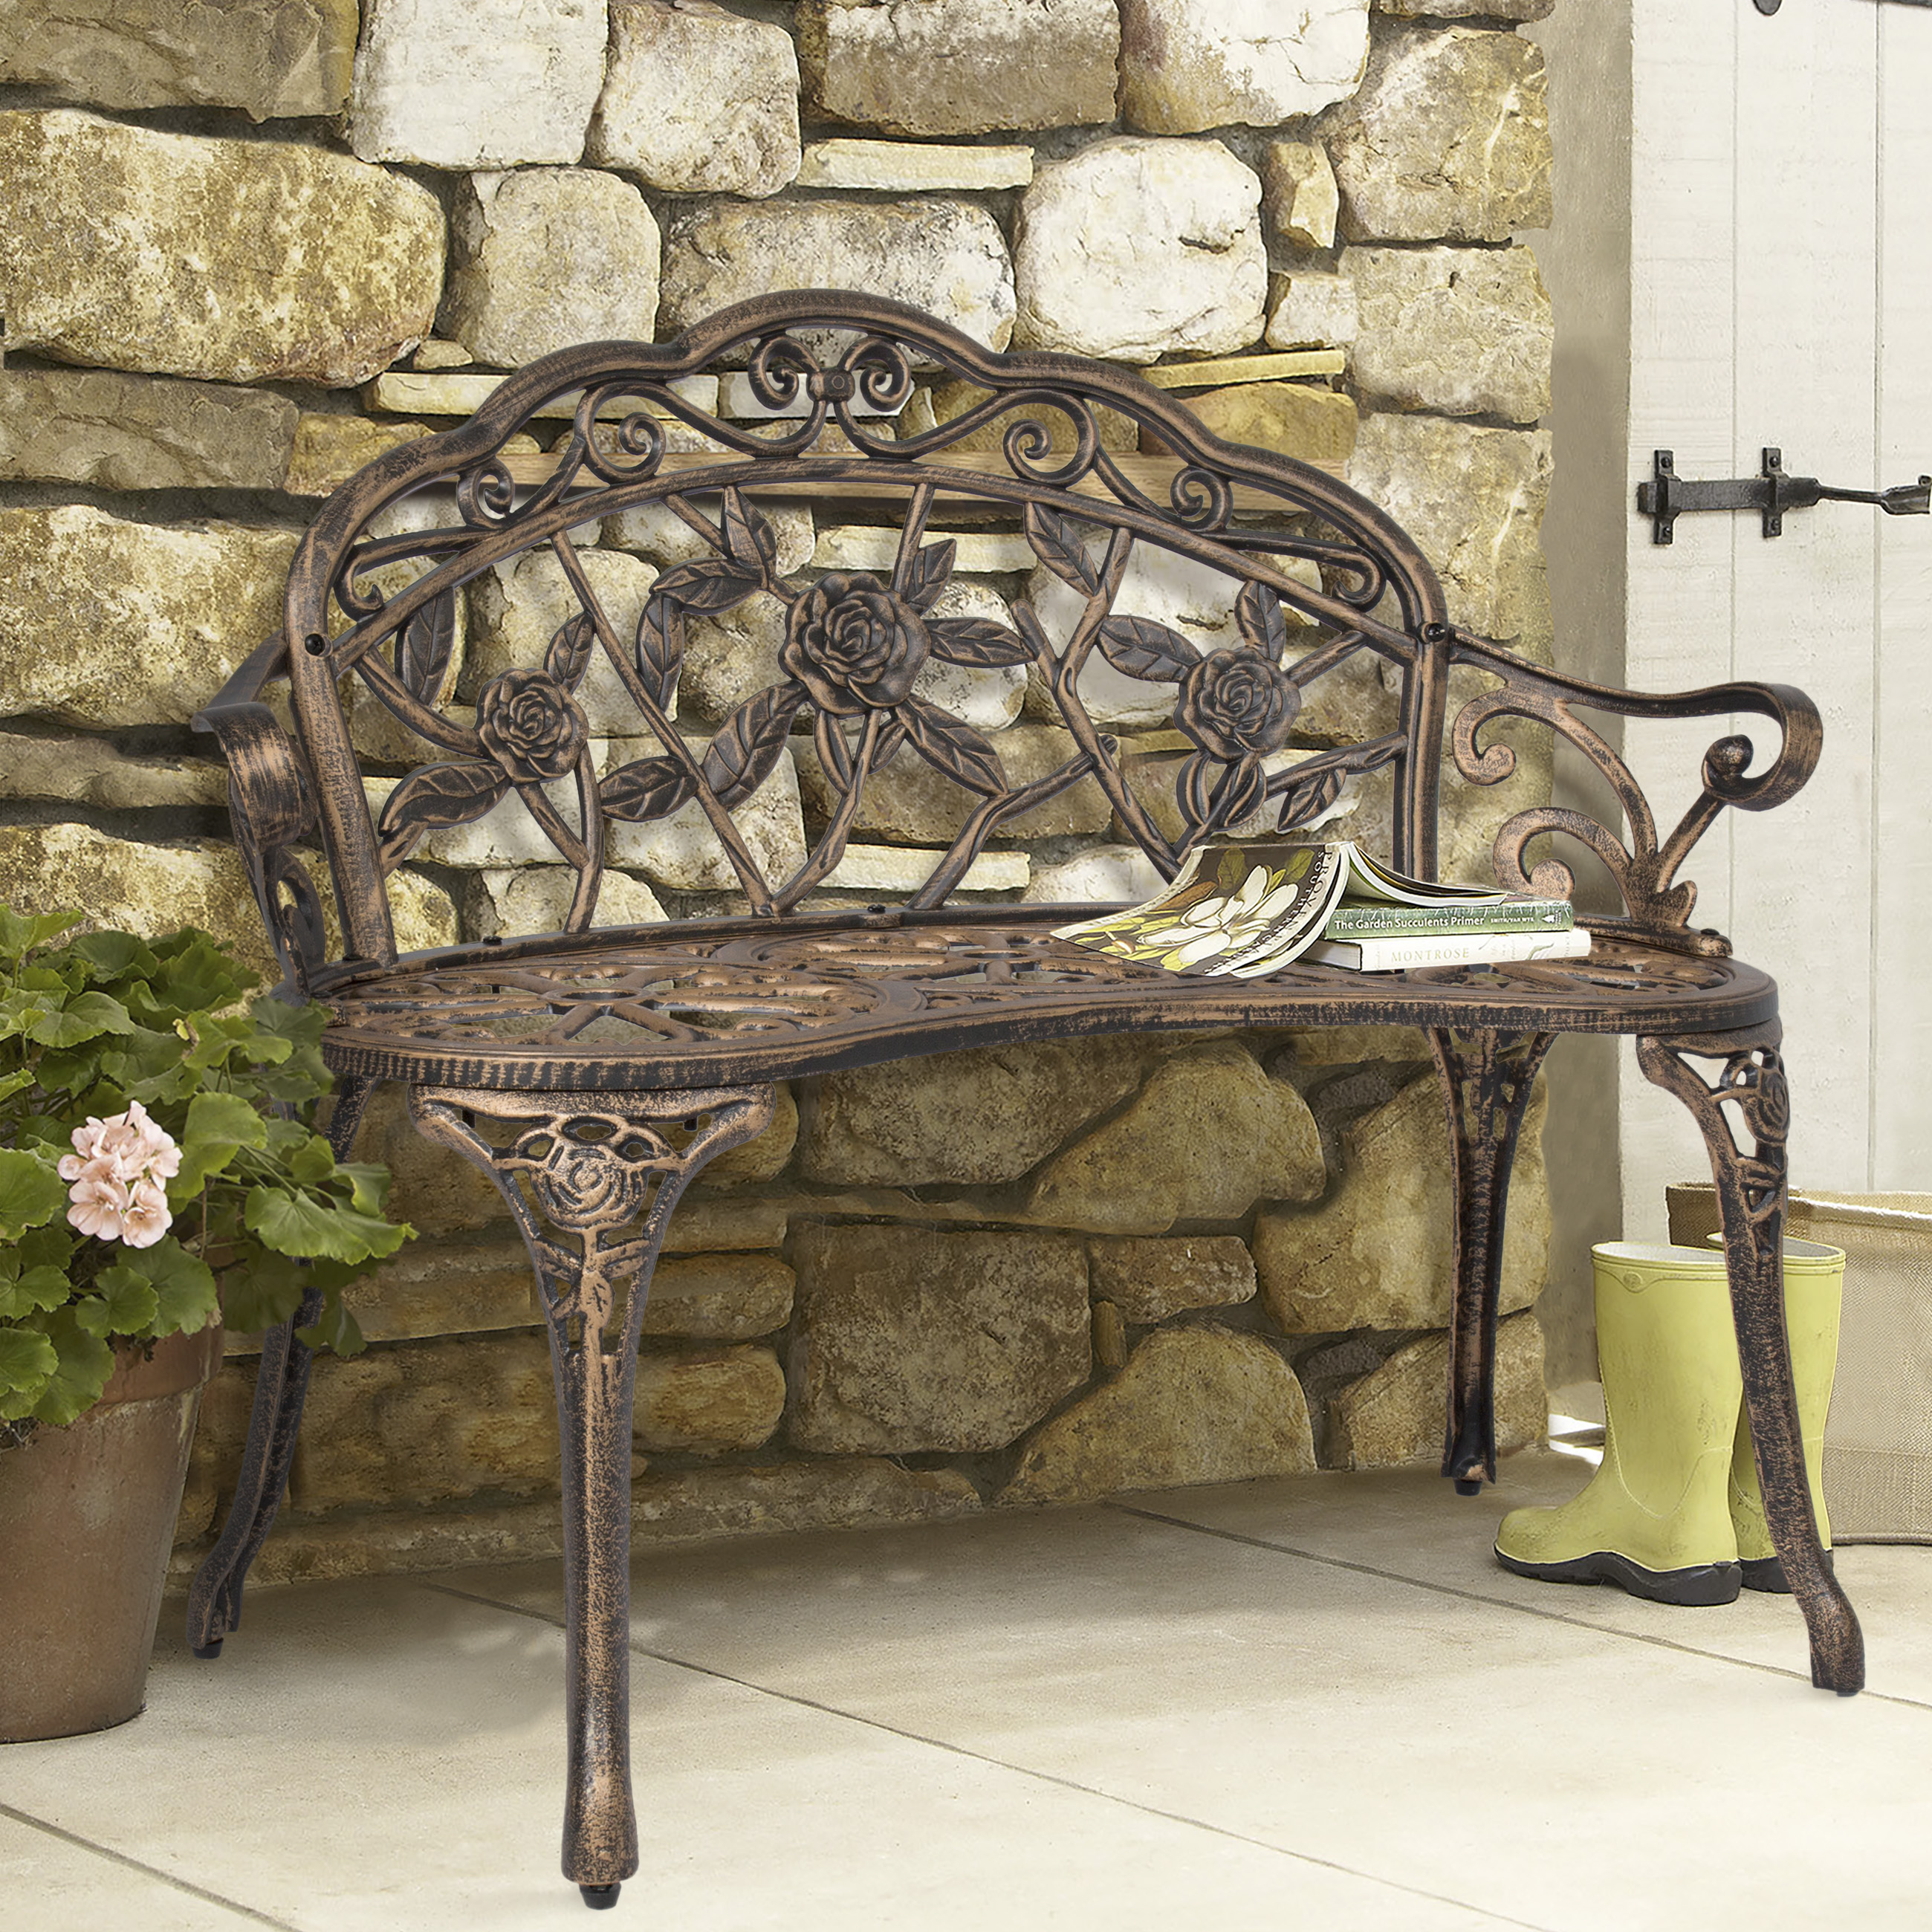 Best Choice Products Floral Rose Accented Metal Garden Patio Bench w  Antique Finish... by Best Choice Products